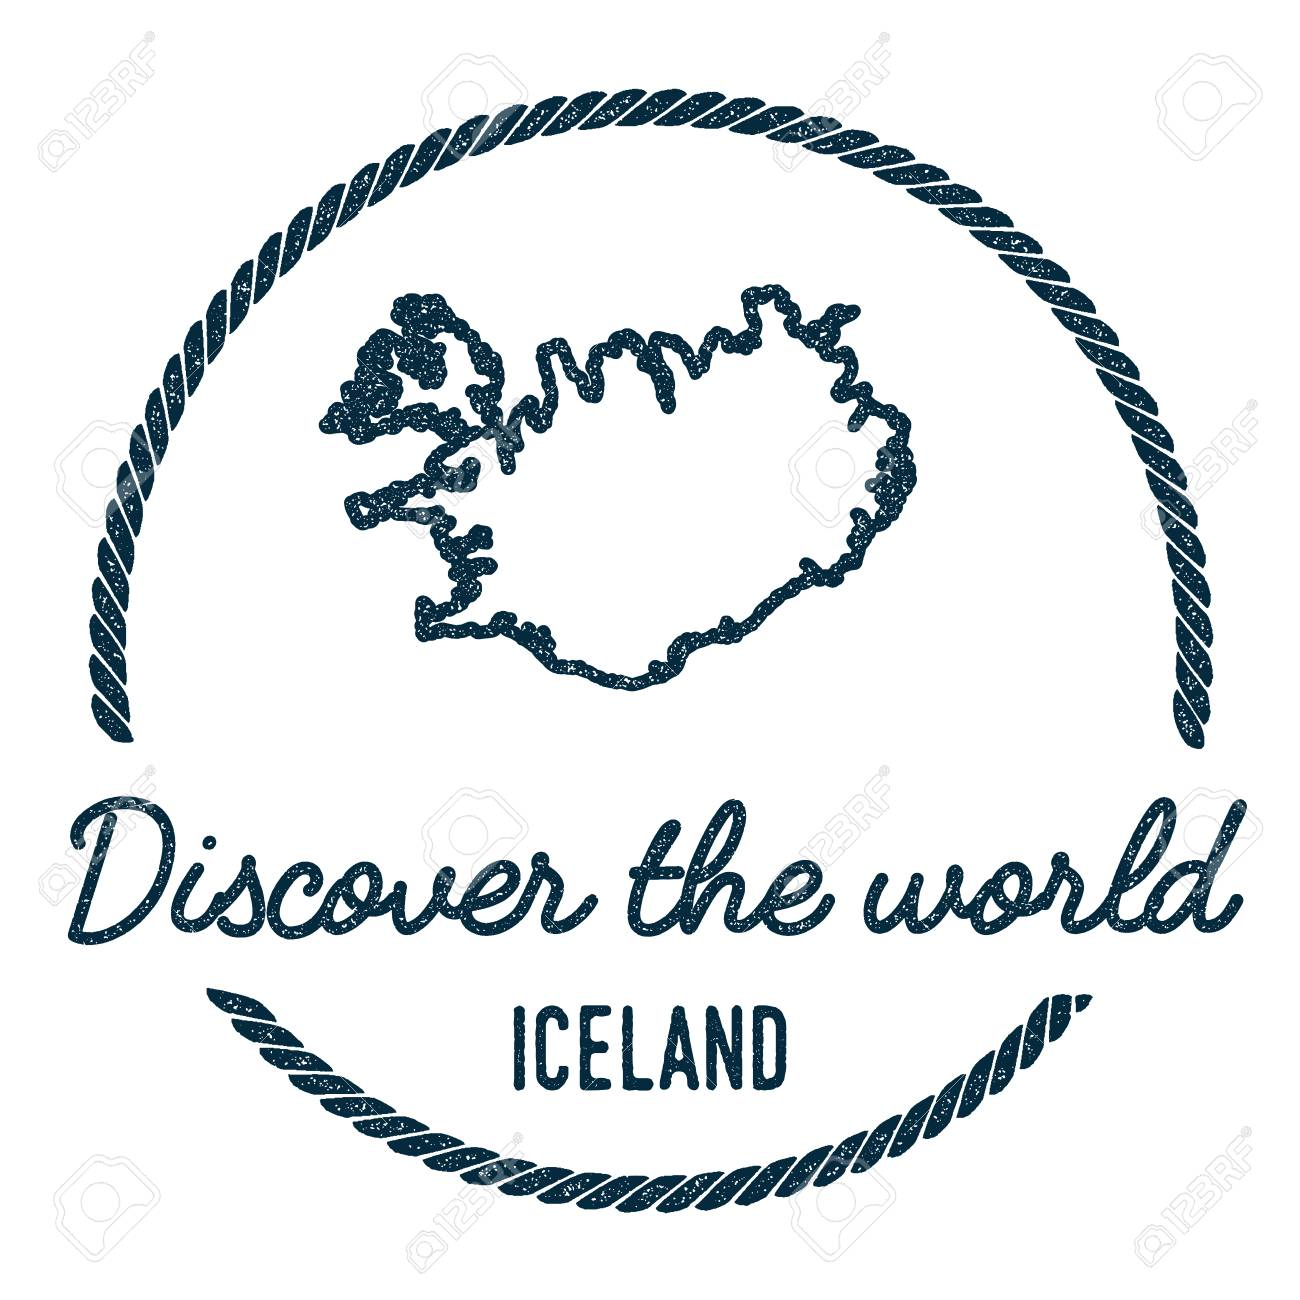 Iceland Map Outline. Vintage Discover the World Rubber Stamp..